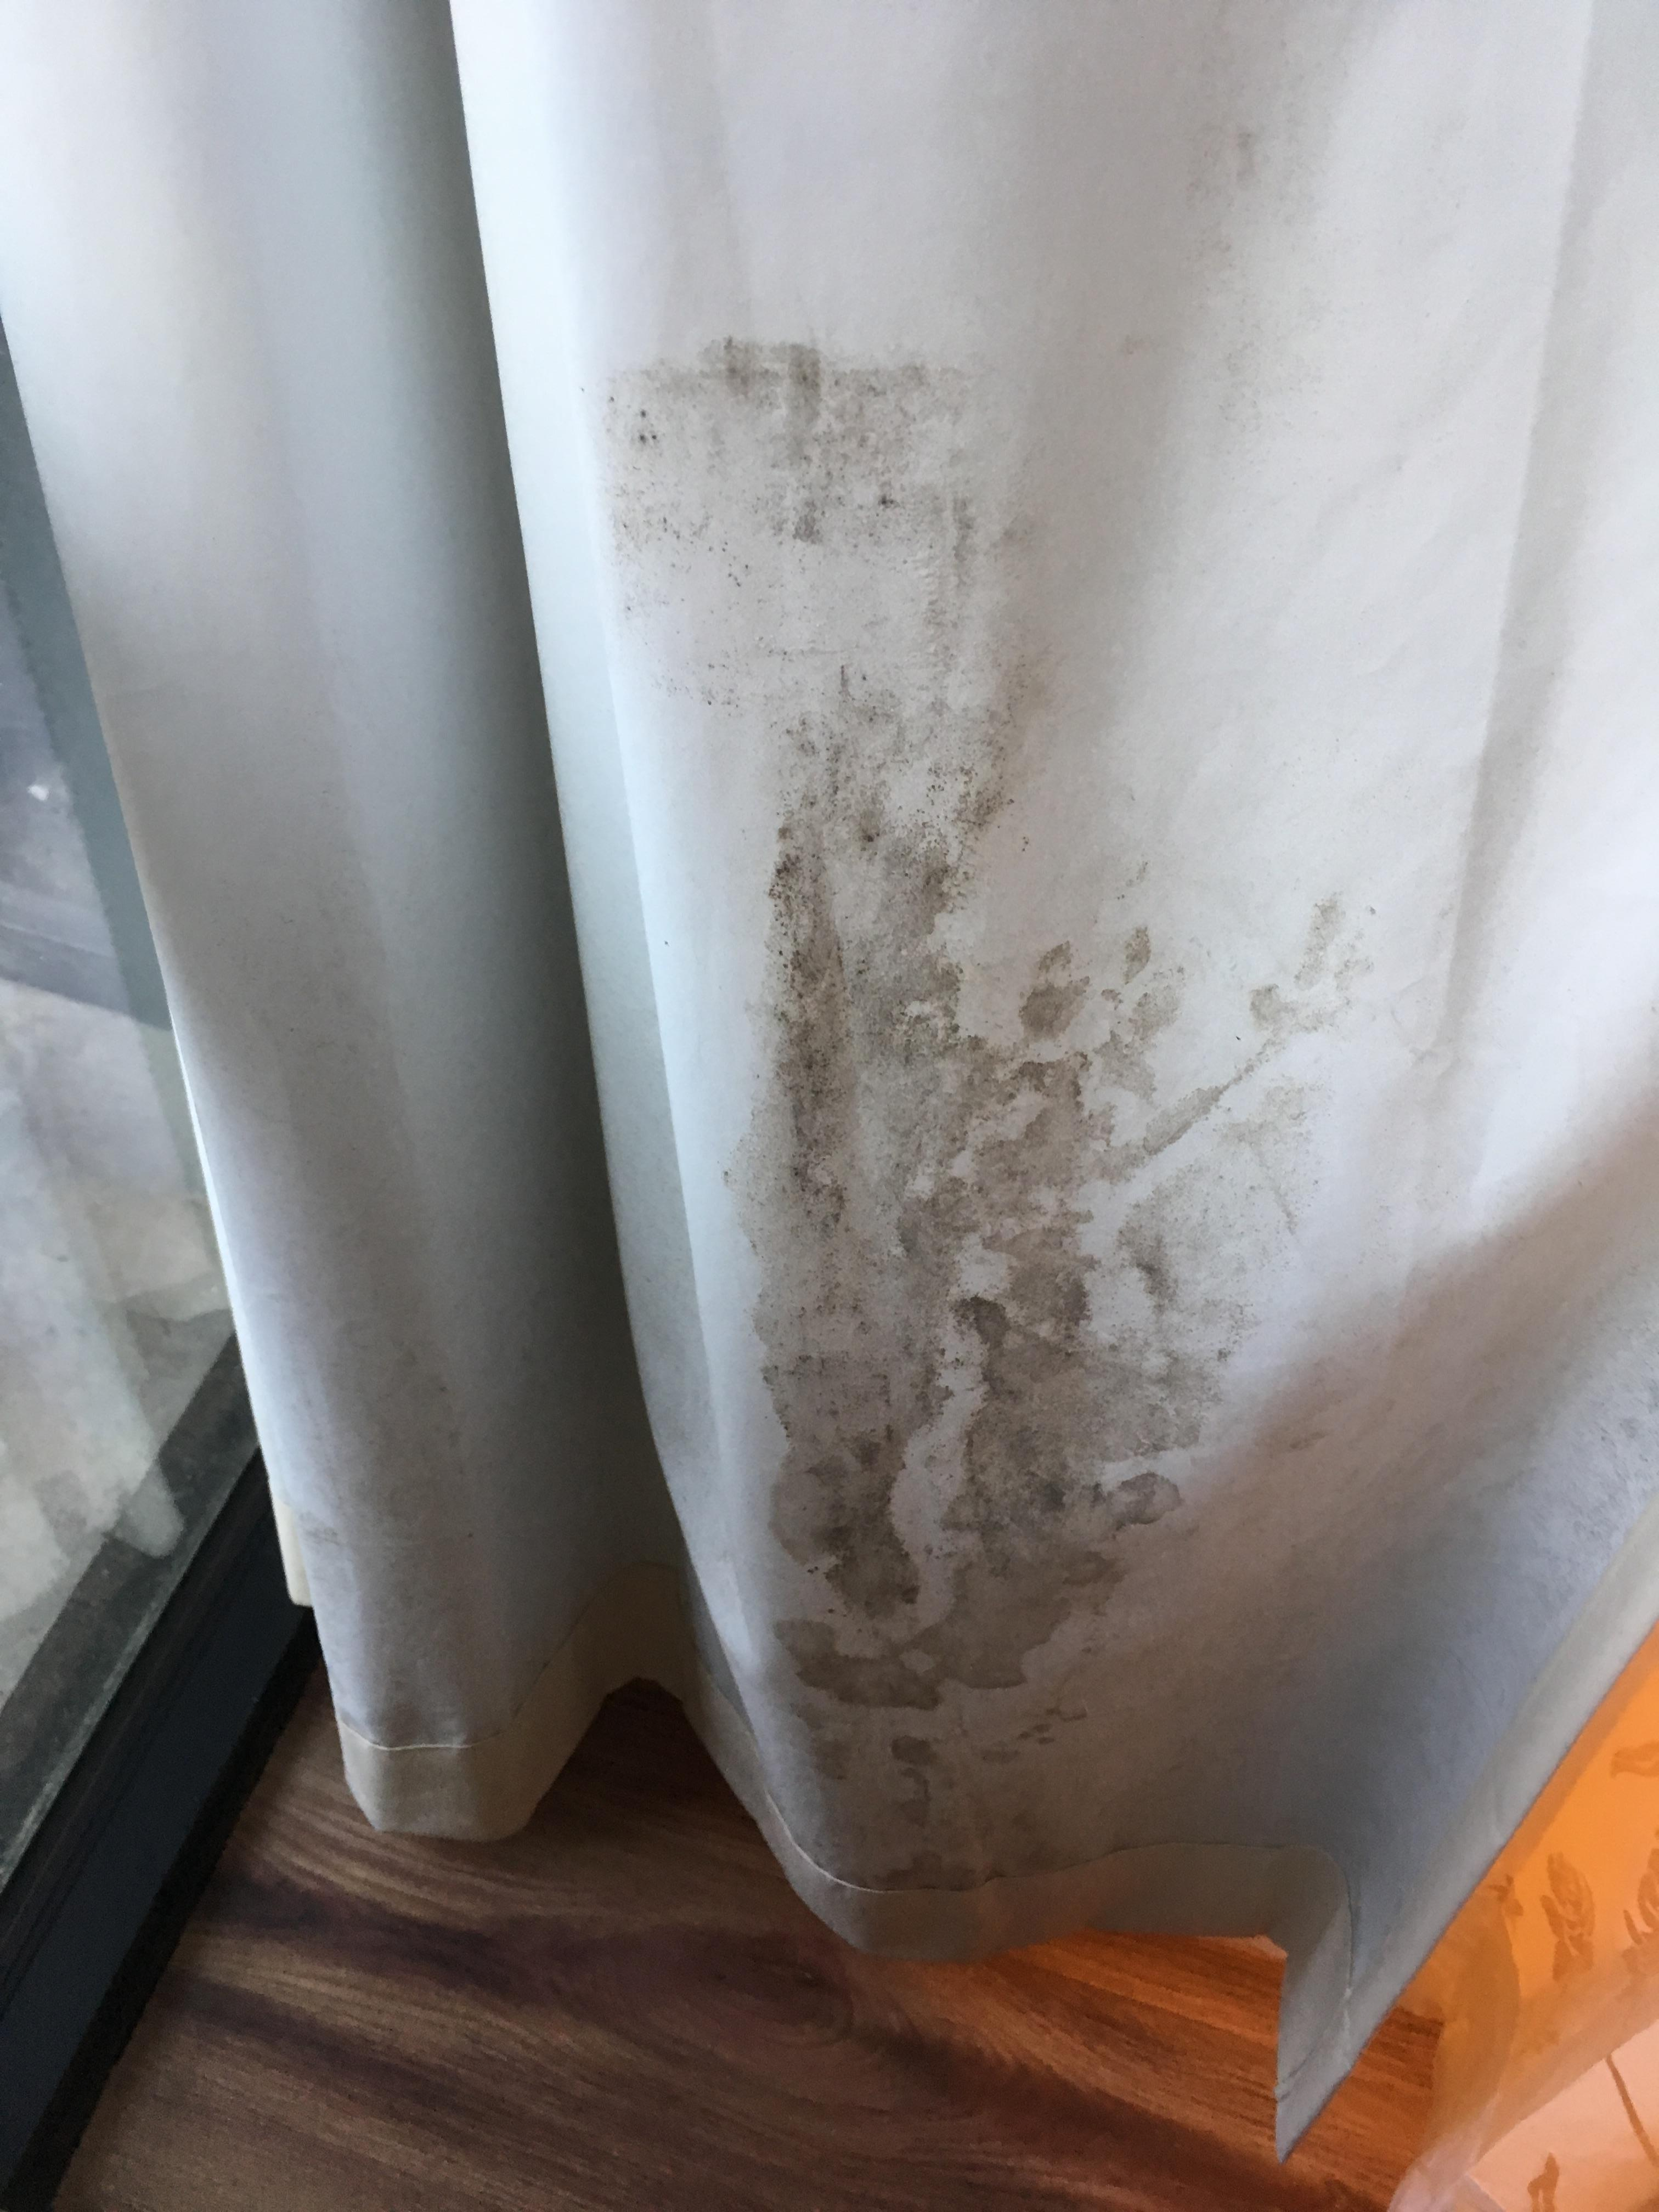 moldy window curtain